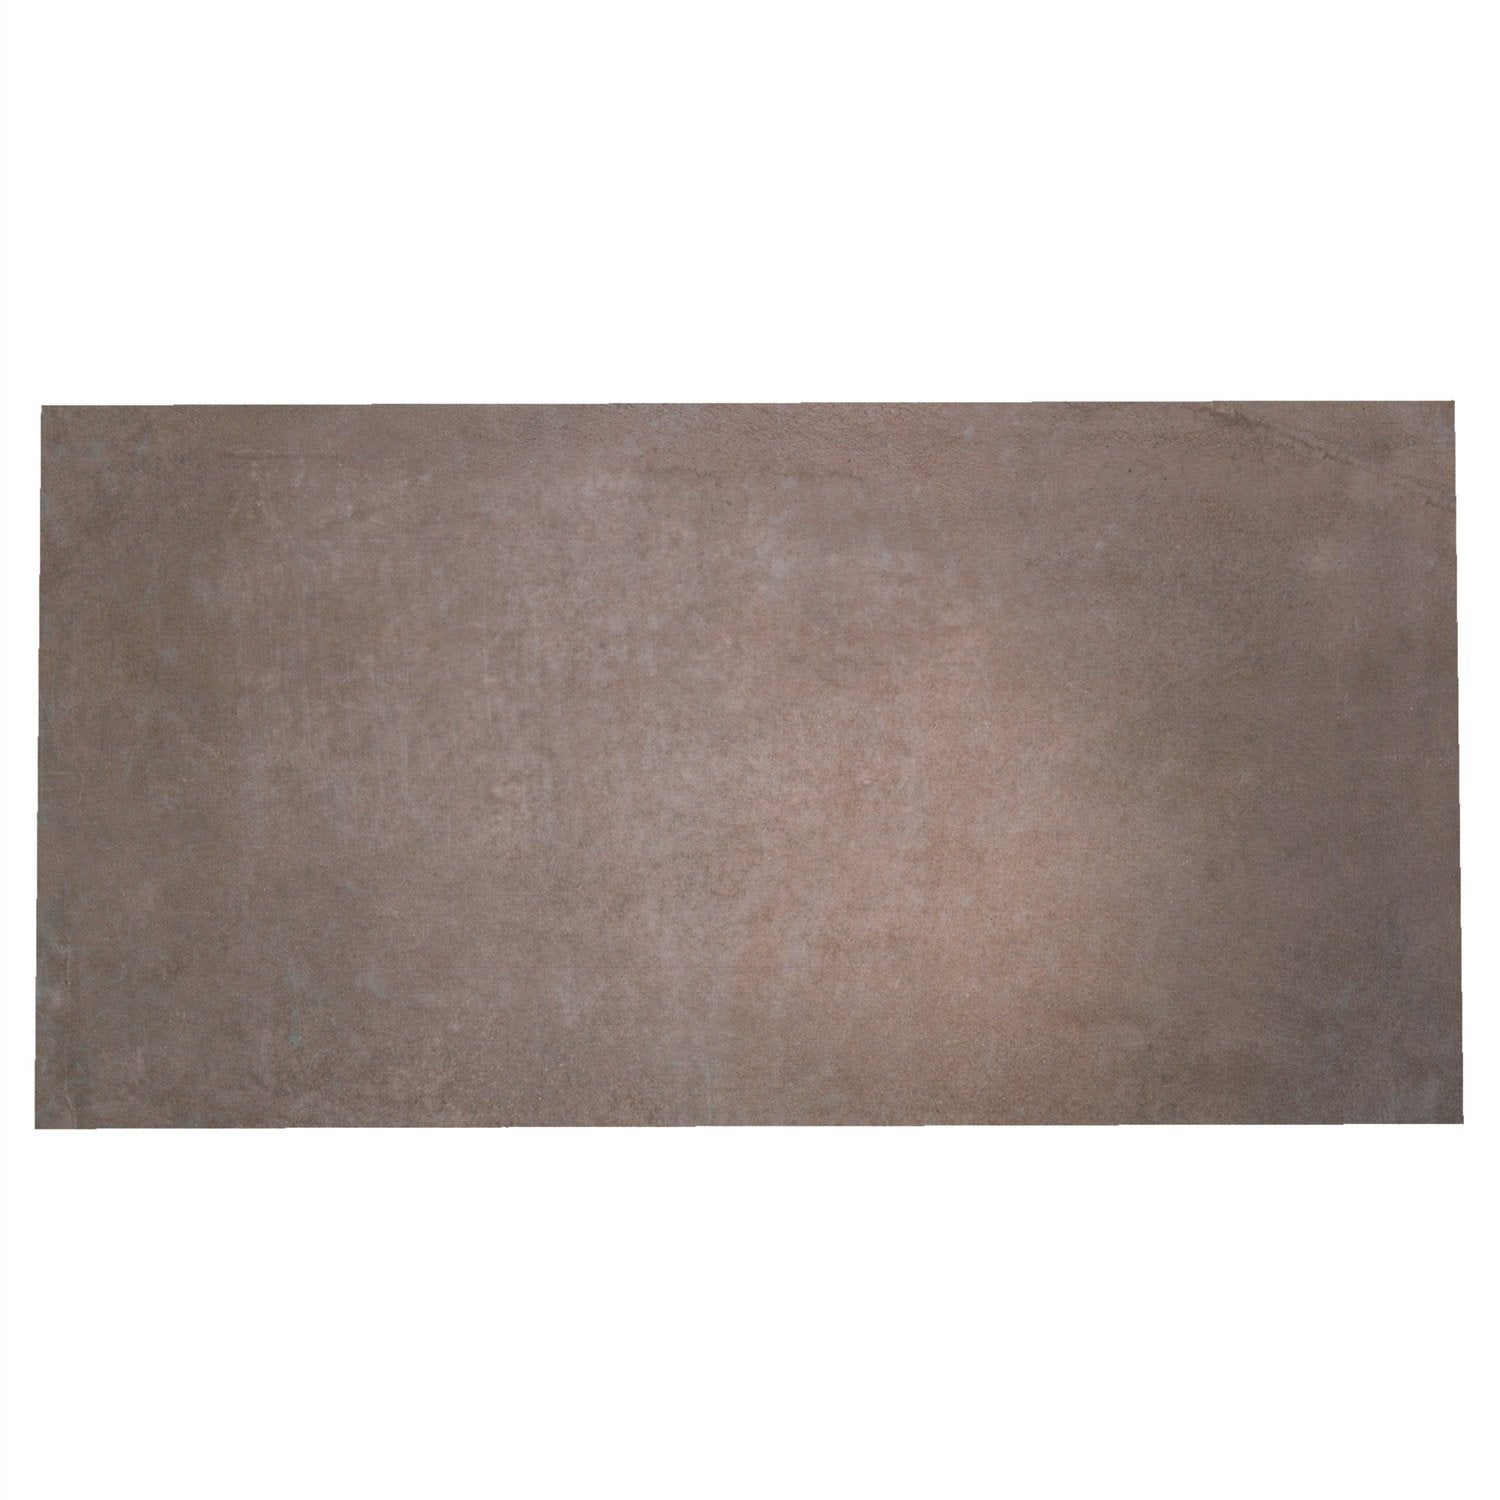 Carrelage sol et mur marron effet ciment fili re x l for Carrelage sol marron